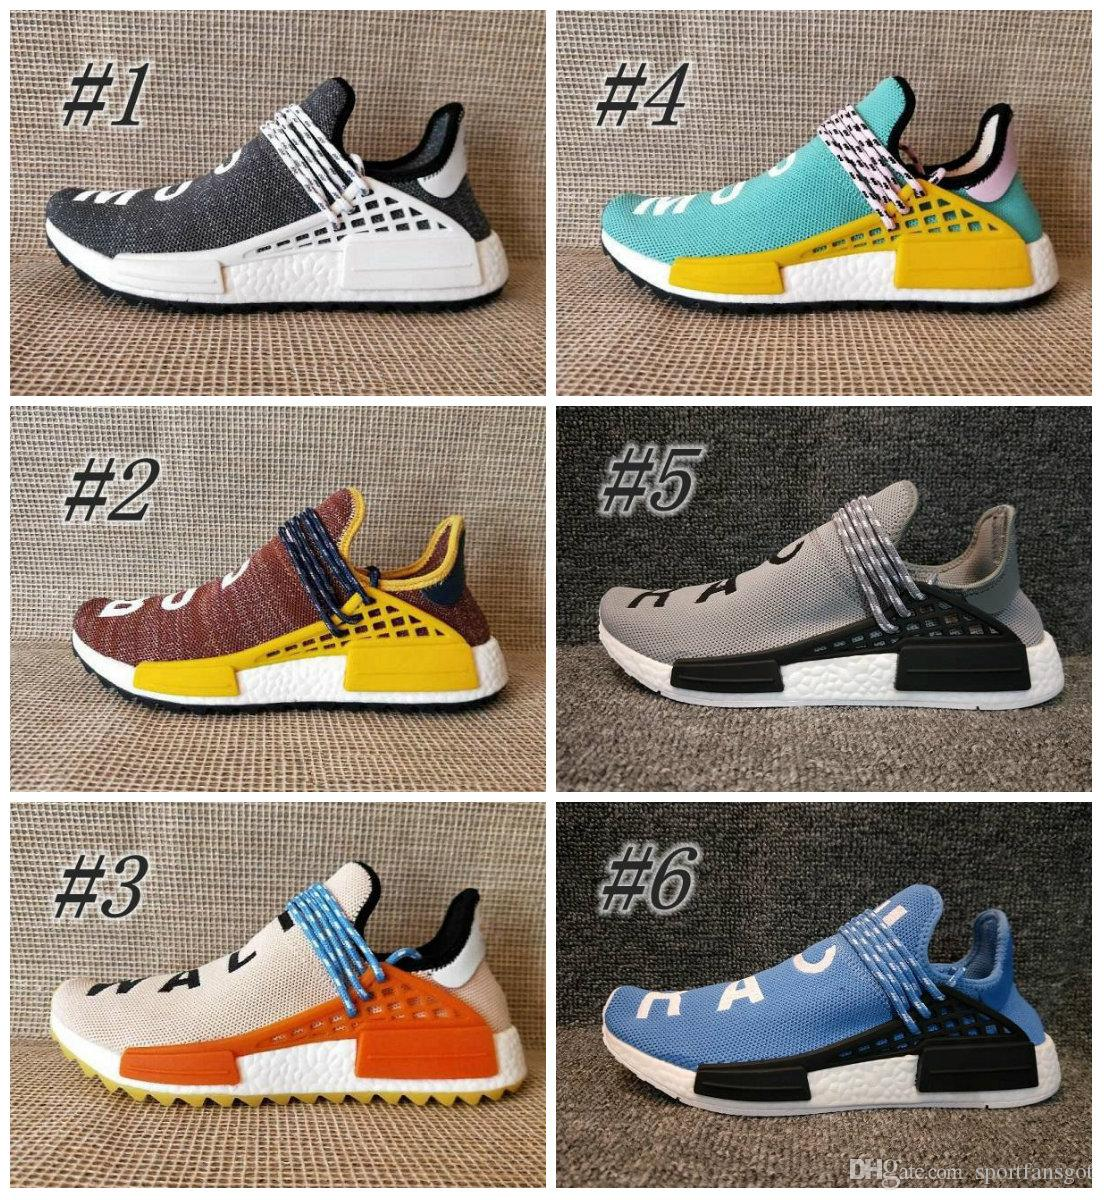 New Luxury brand men shoes Pharrell Williams Designer sneakers Sports Running Shoes Yellow Red Athletic mens Outdoor Training Sneaker Shoes free shipping Inexpensive kNS8zKgJK